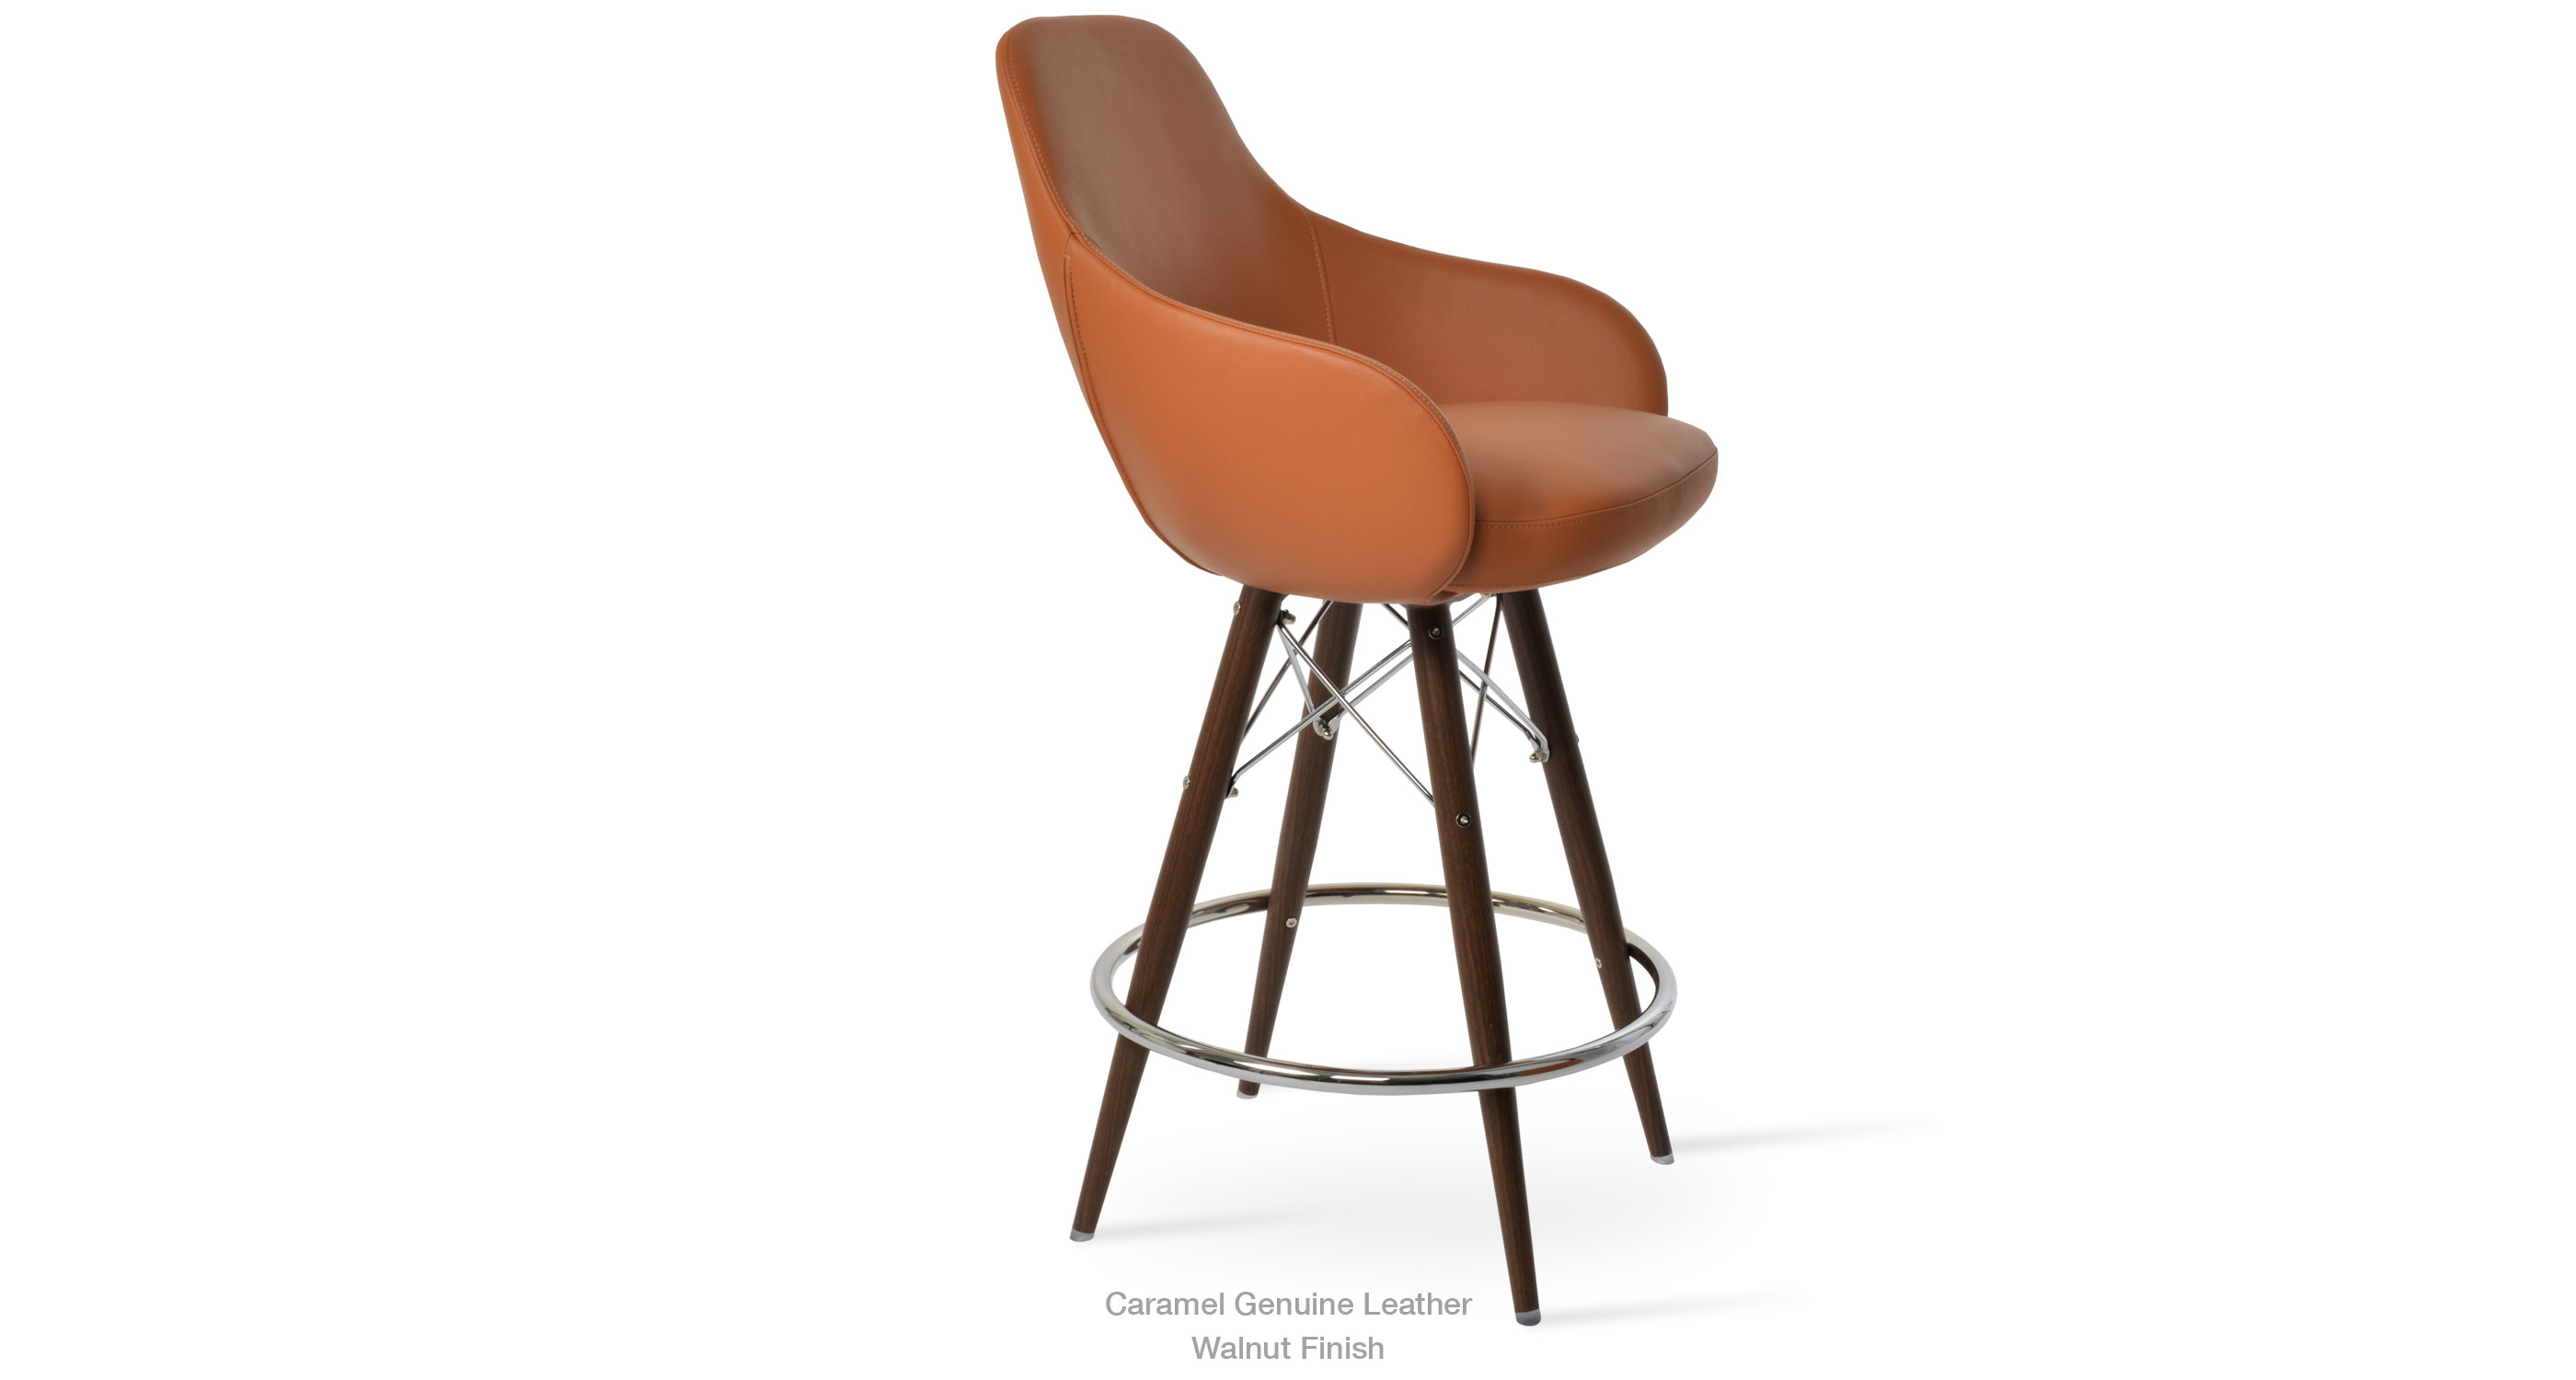 12 11 20 Gazel Arm Mw Stool Caramel Leather